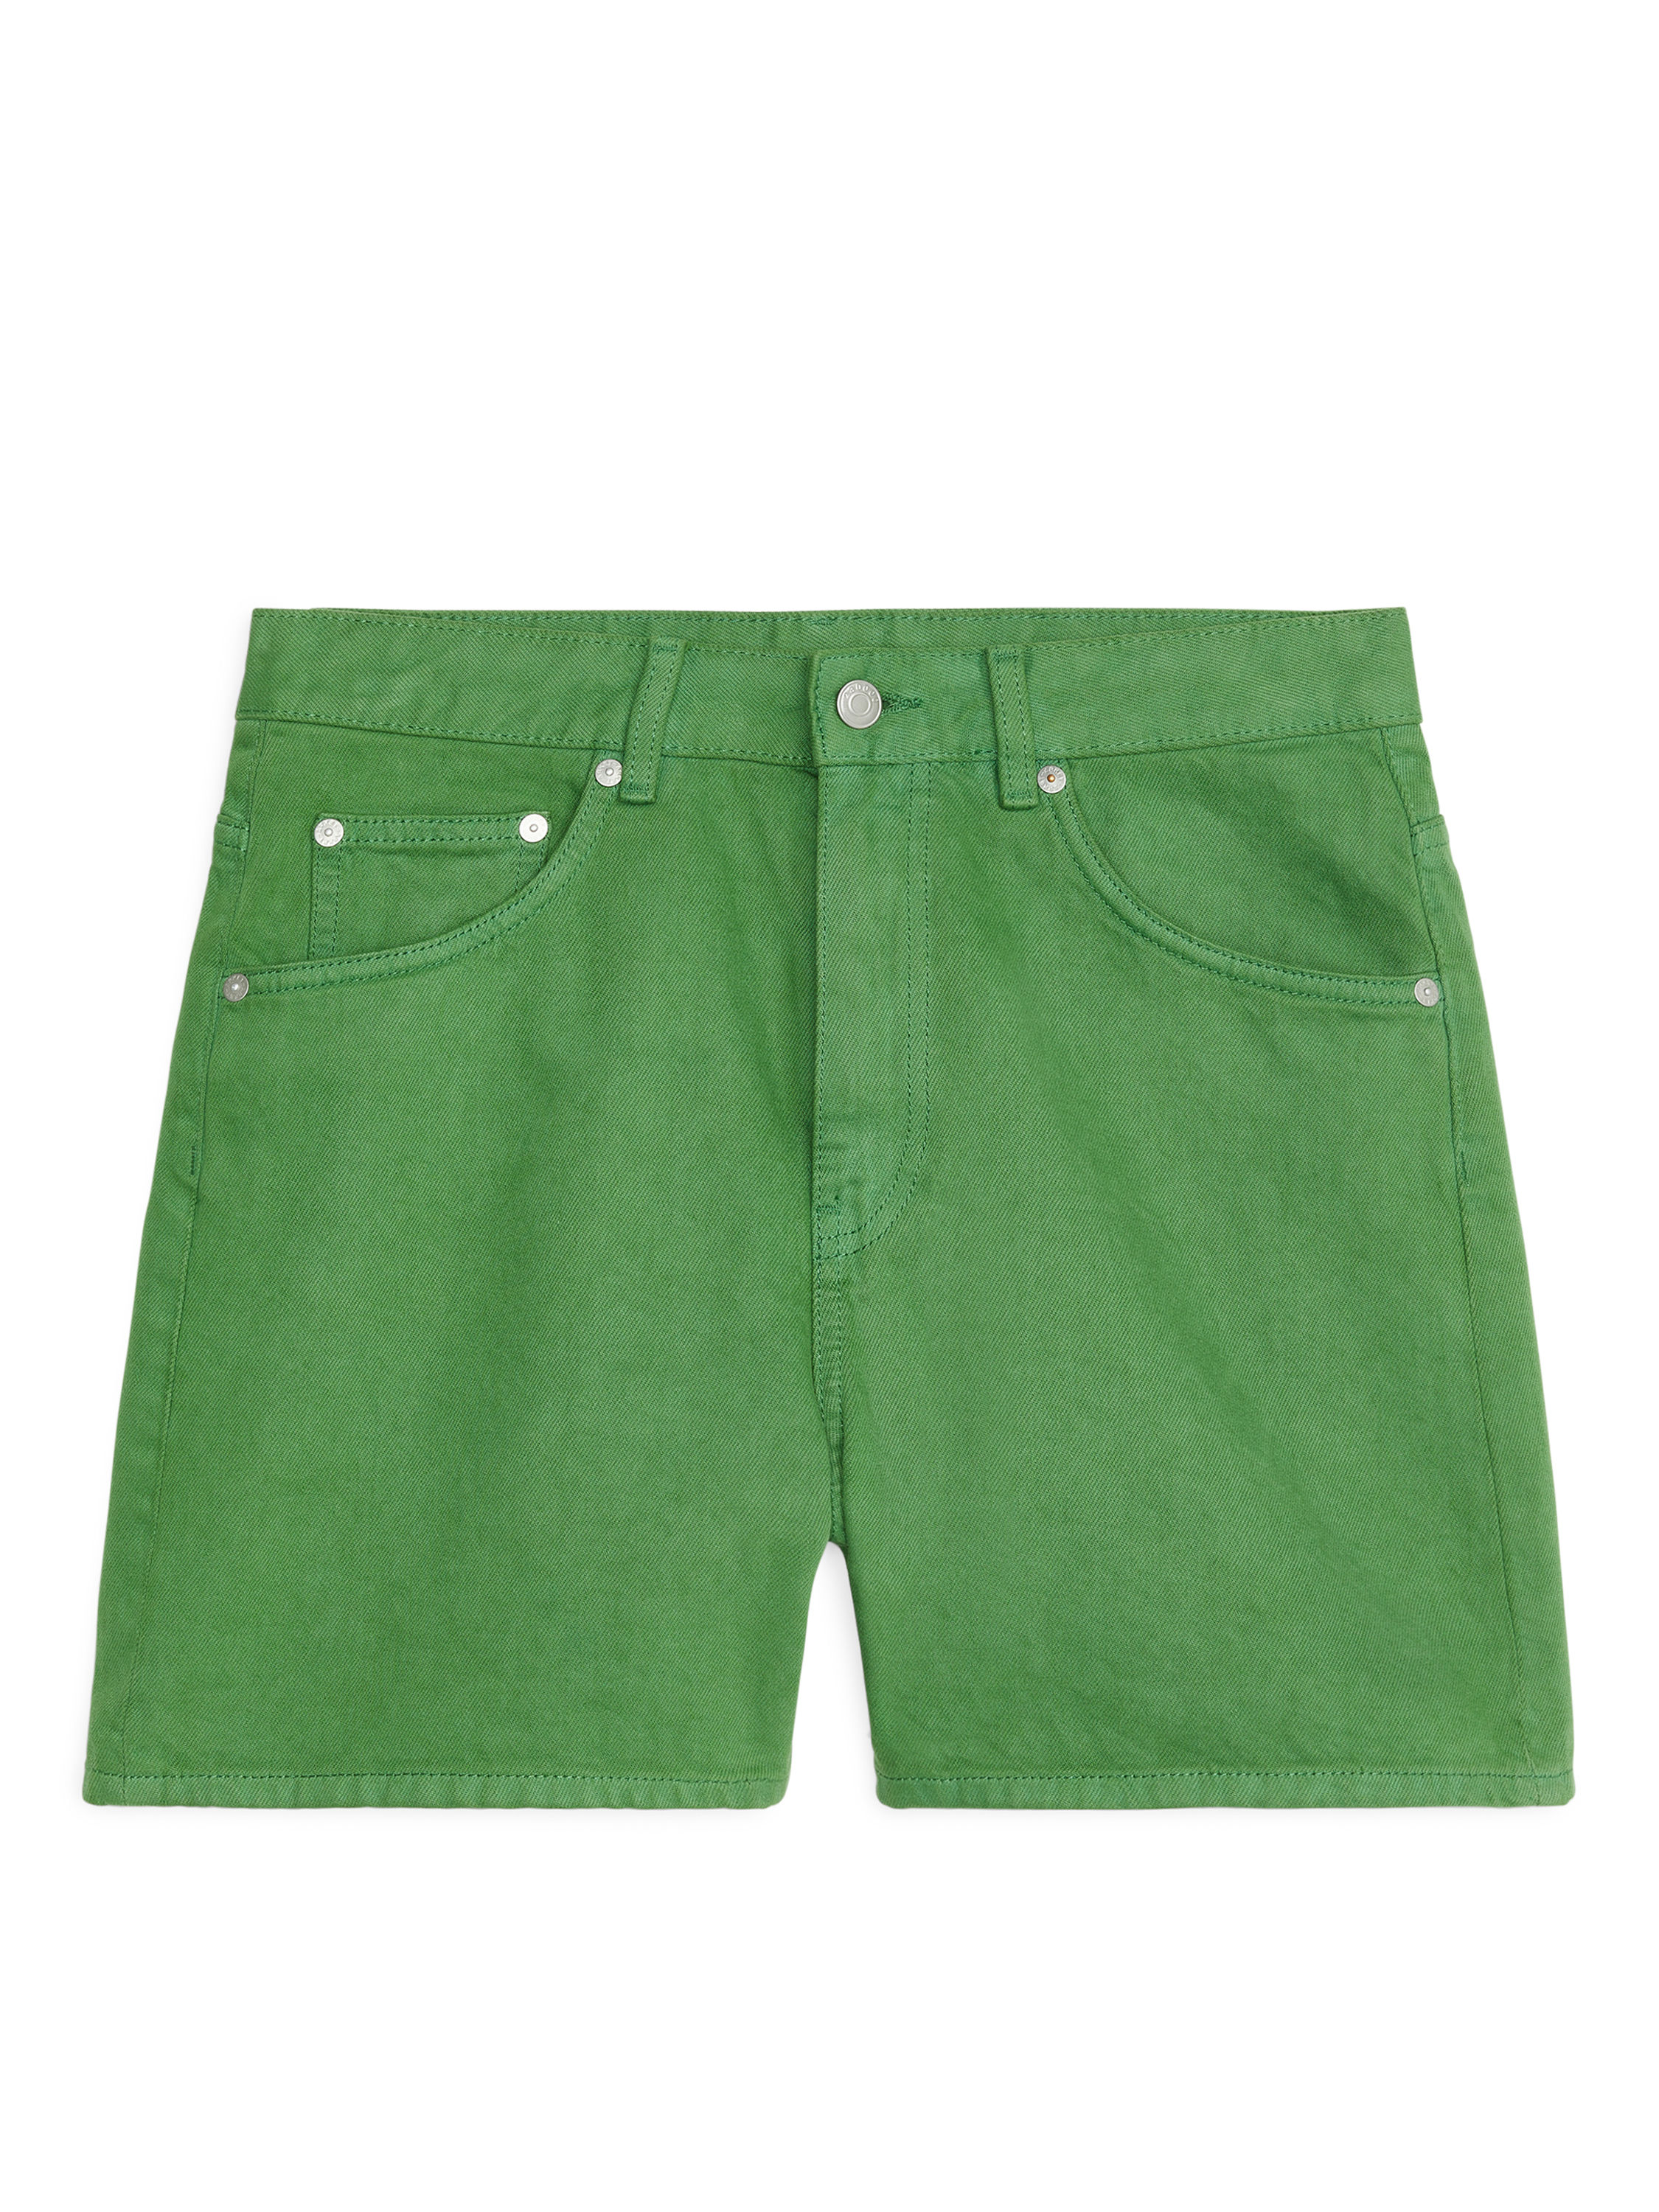 Fabric Swatch image of Arket denim shorts in green